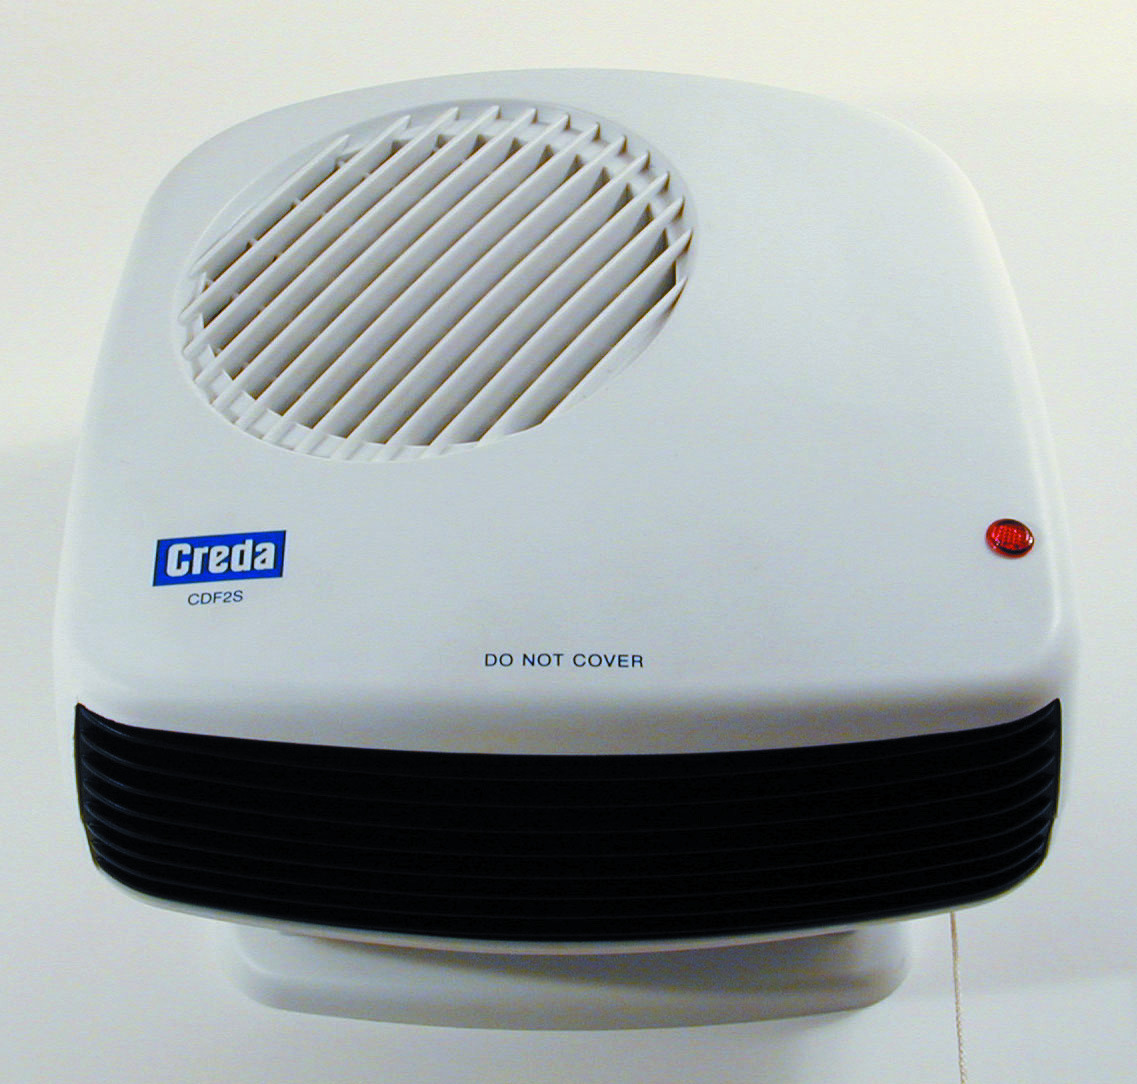 Creda CDF1 1Kw Compact Bathroom Downflow Fan Heater Storage Heaters Electri